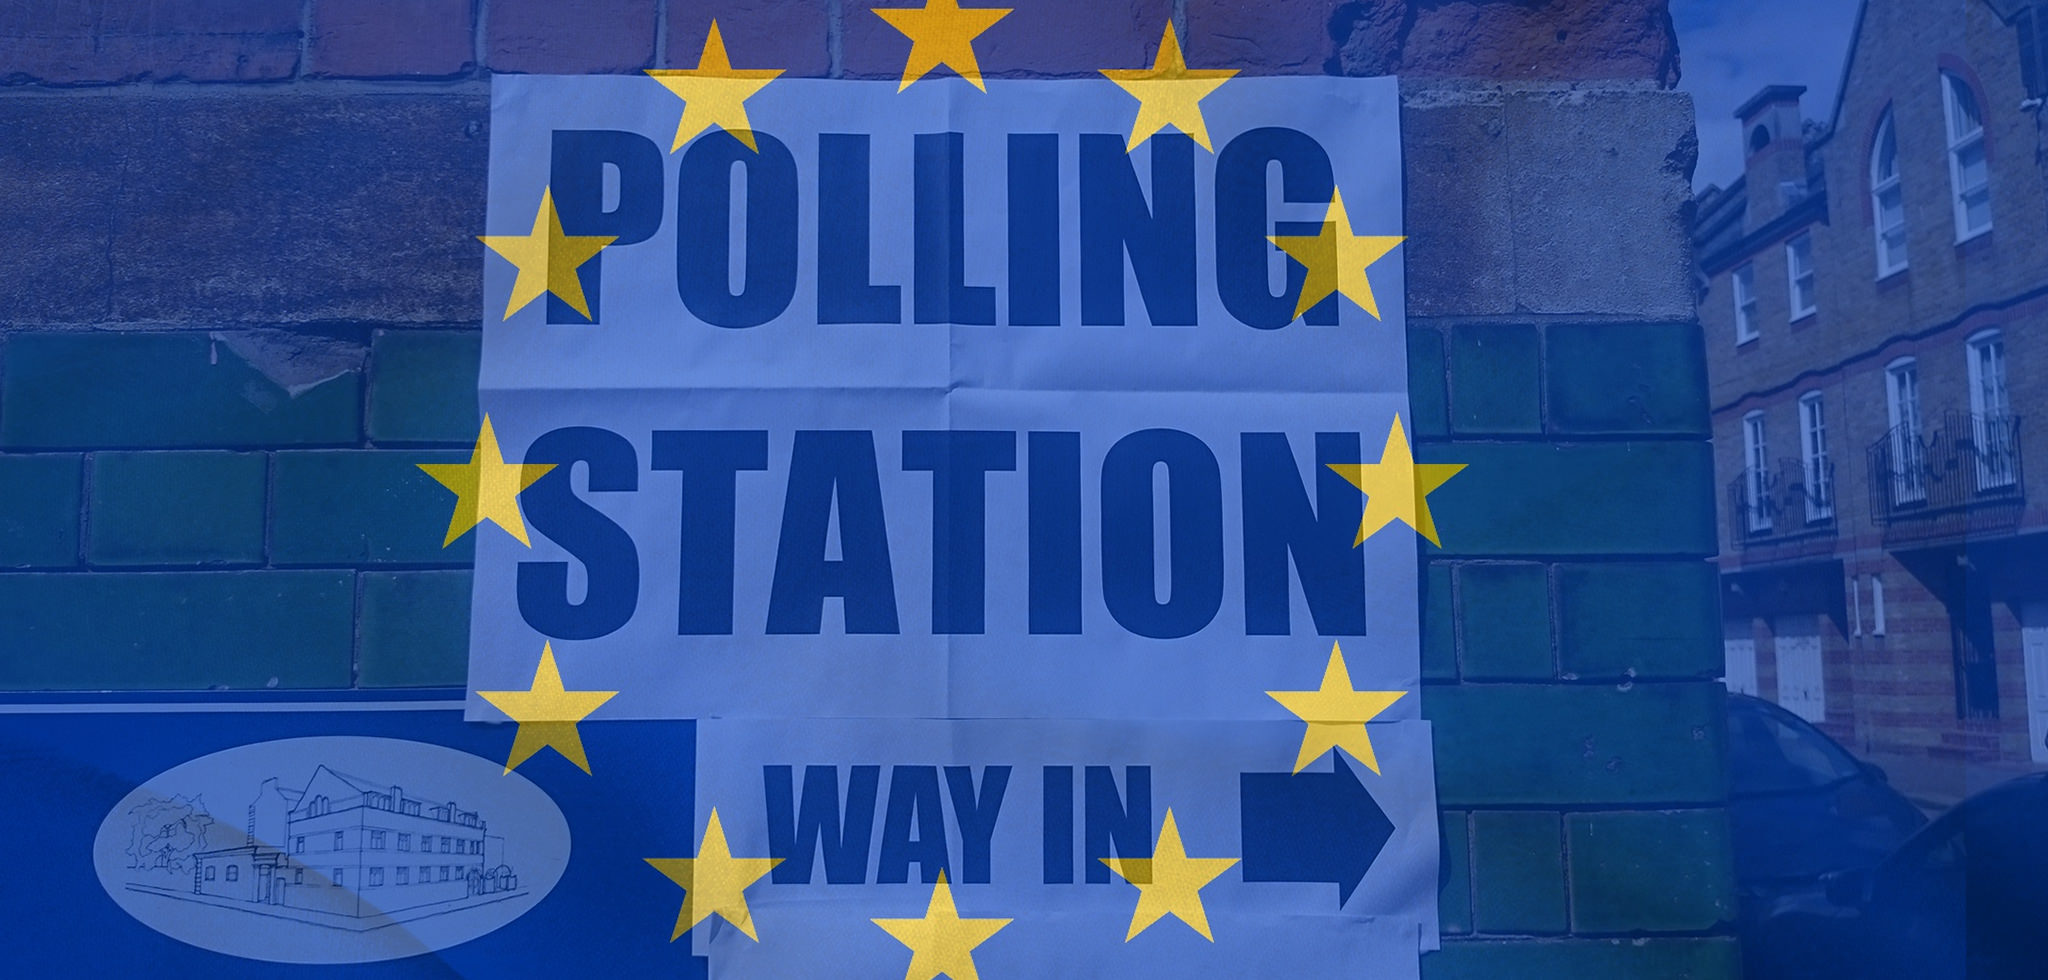 A sign which says 'polling station'', with the EU flag overlapping